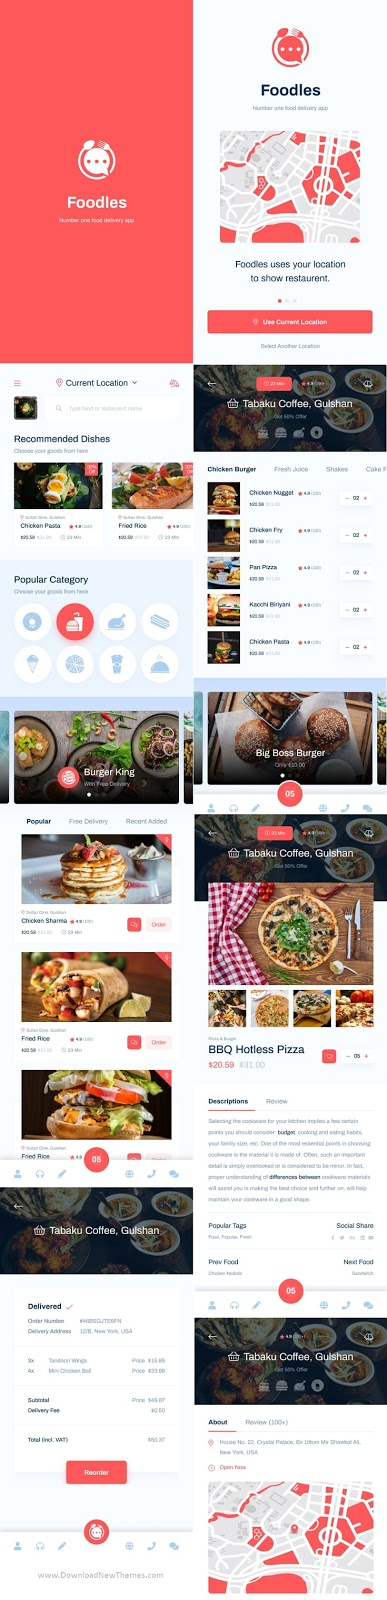 Download Food Delivery Mobile App Design